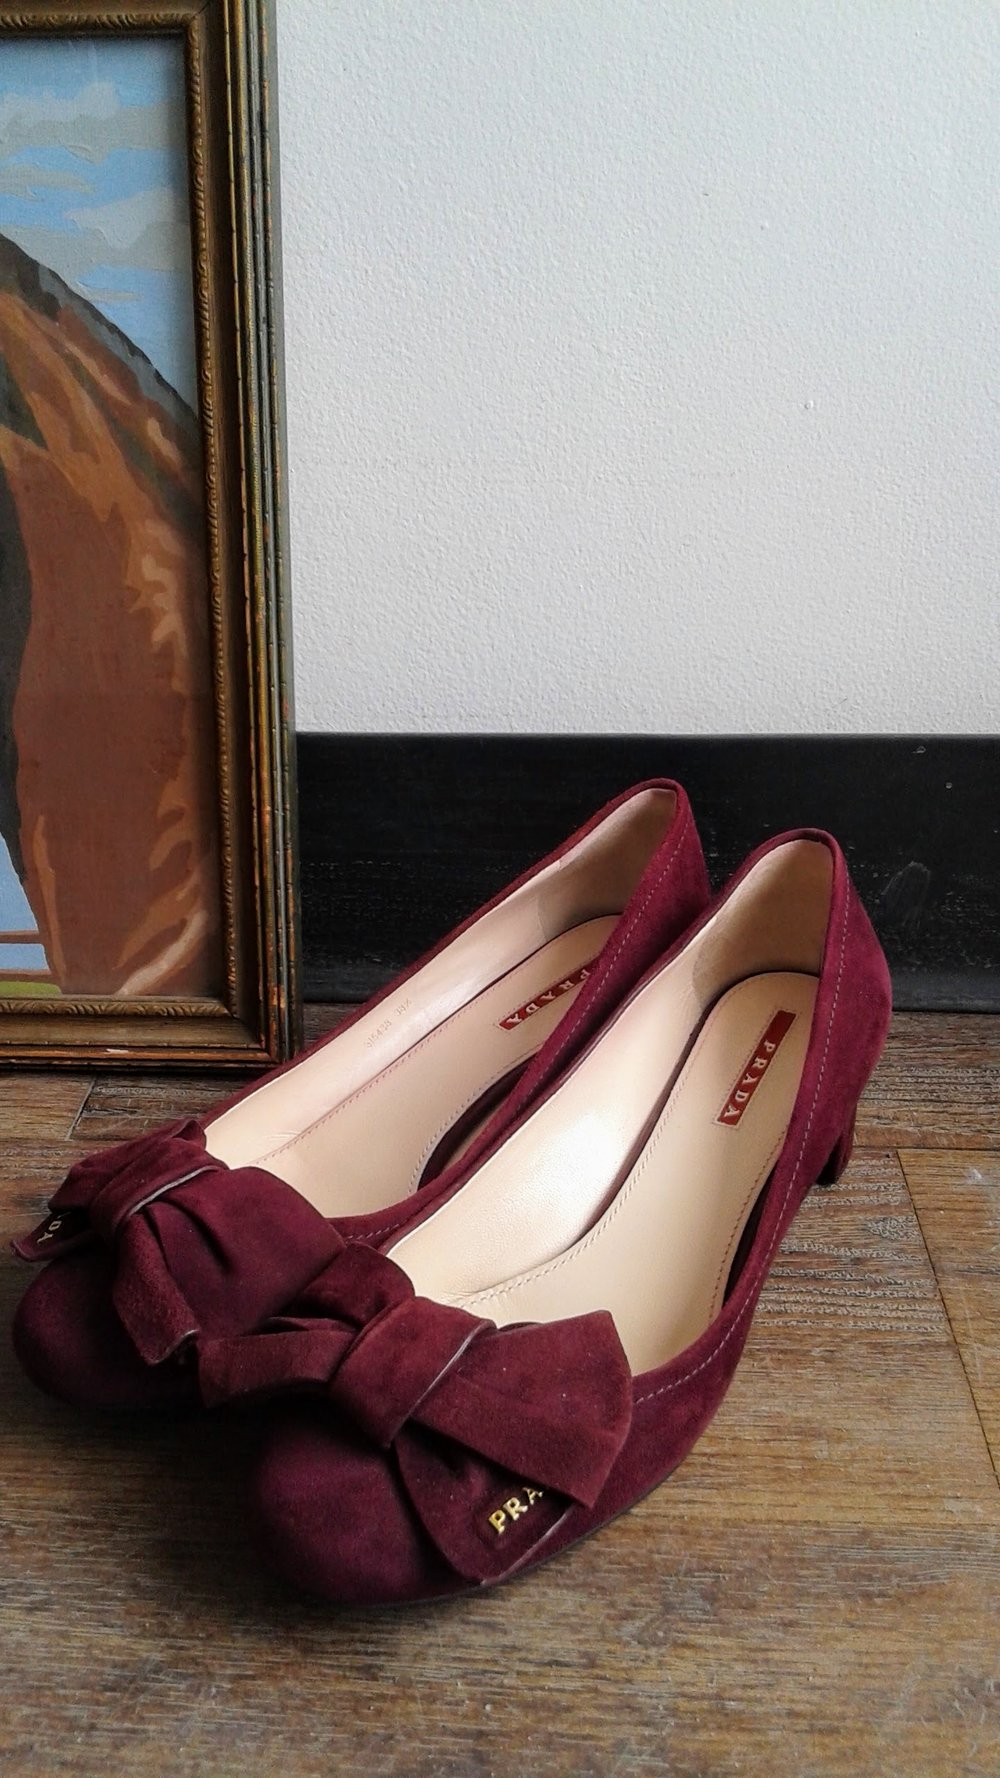 Prada shoes; S8.5, $225